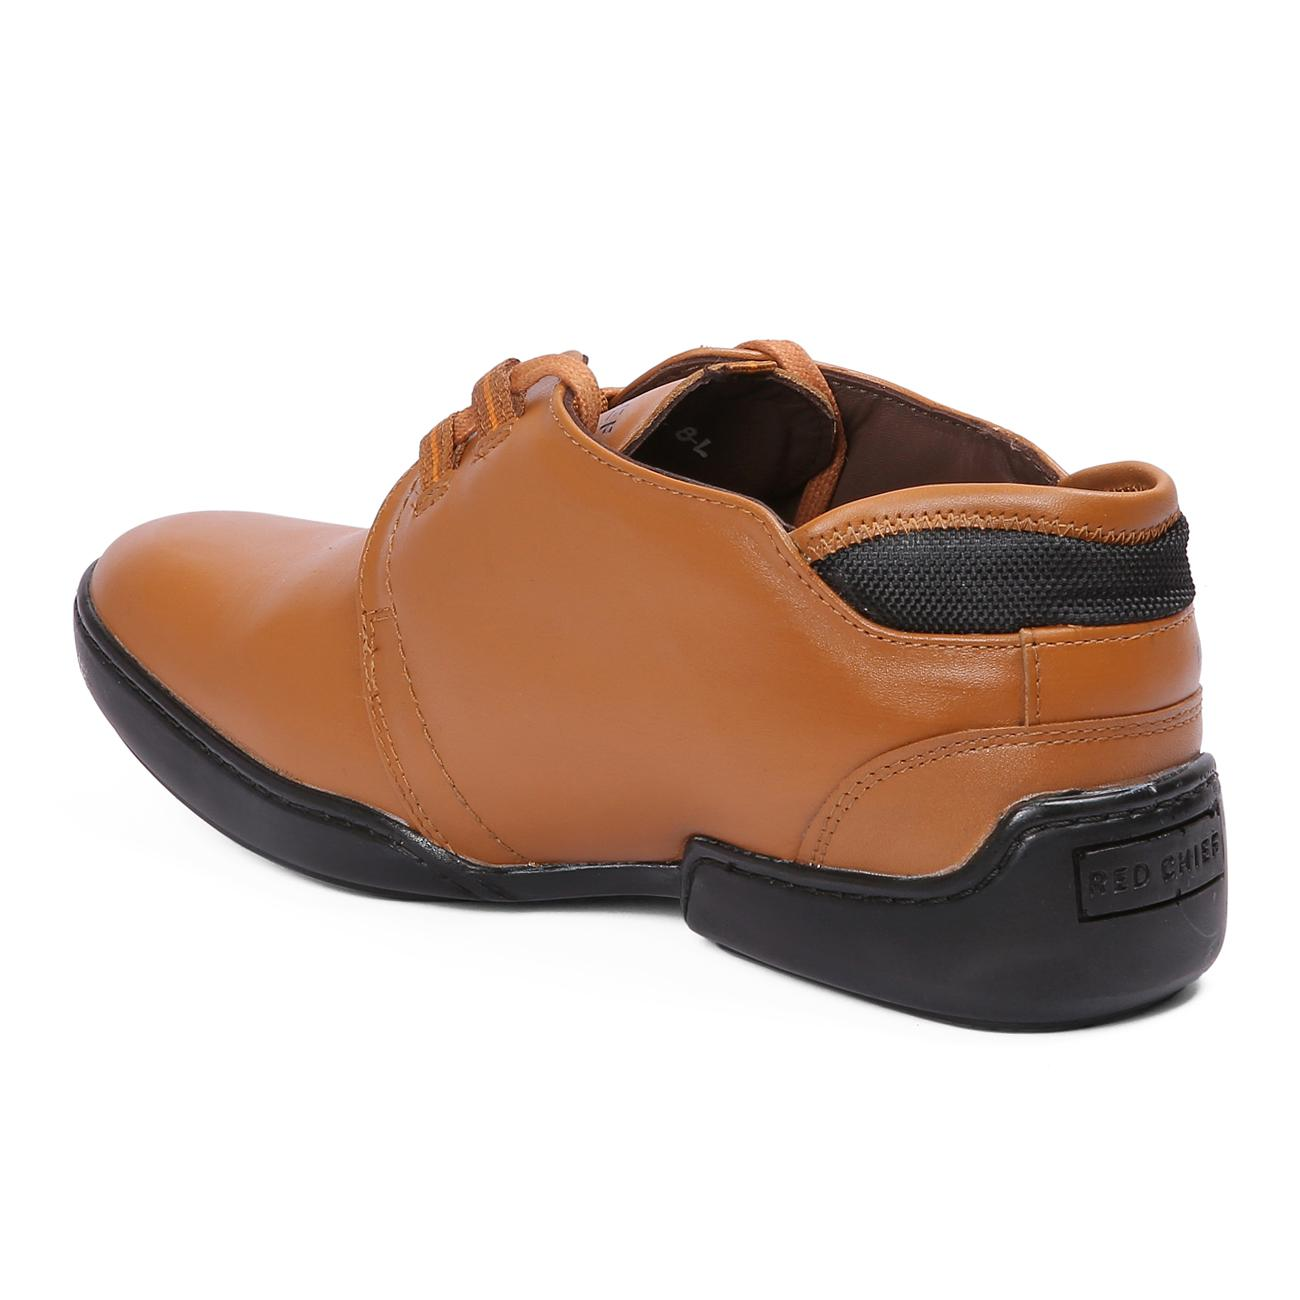 n tan casual leather shoes from behind